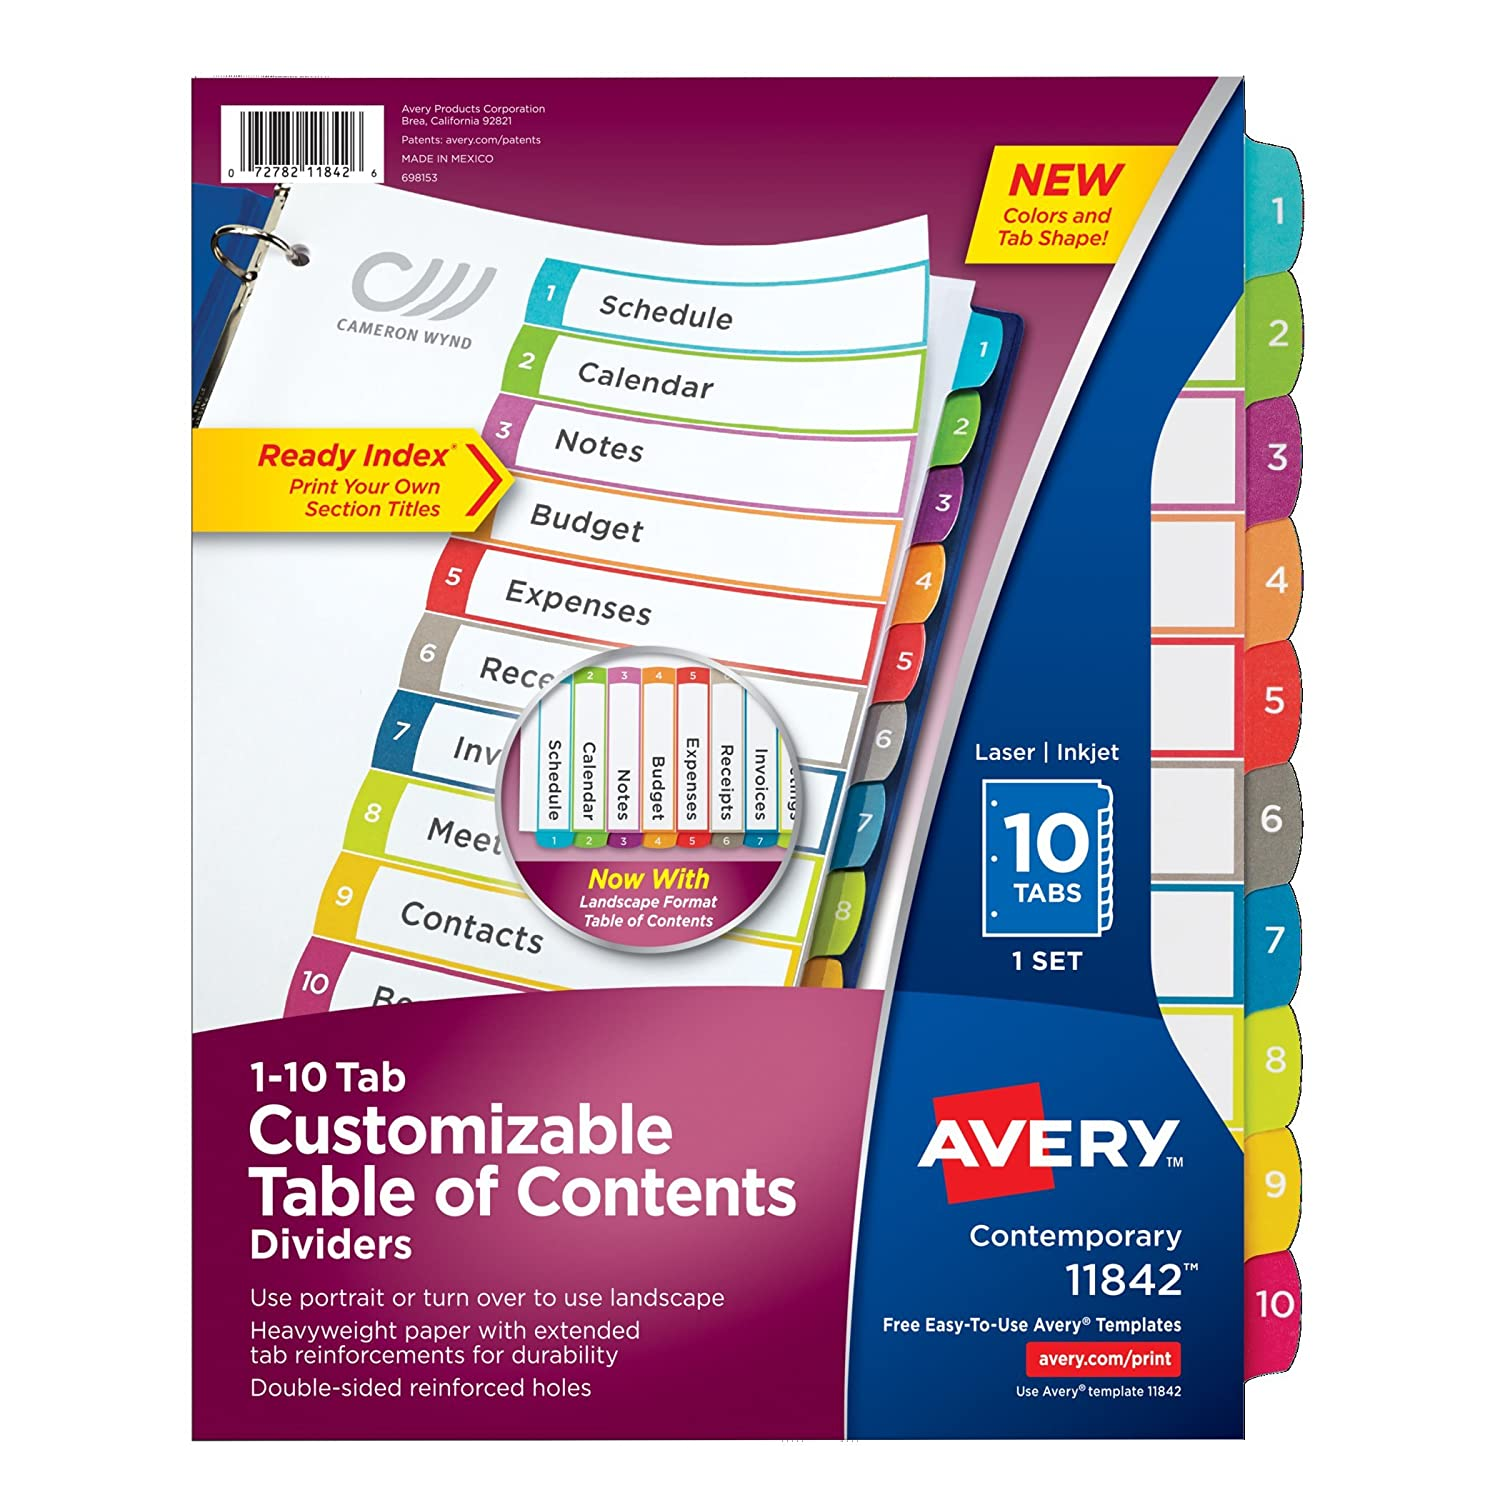 Avery Customizable Table of Contents Dividers, 10-Tab Set (11842) Avery Products Corporation